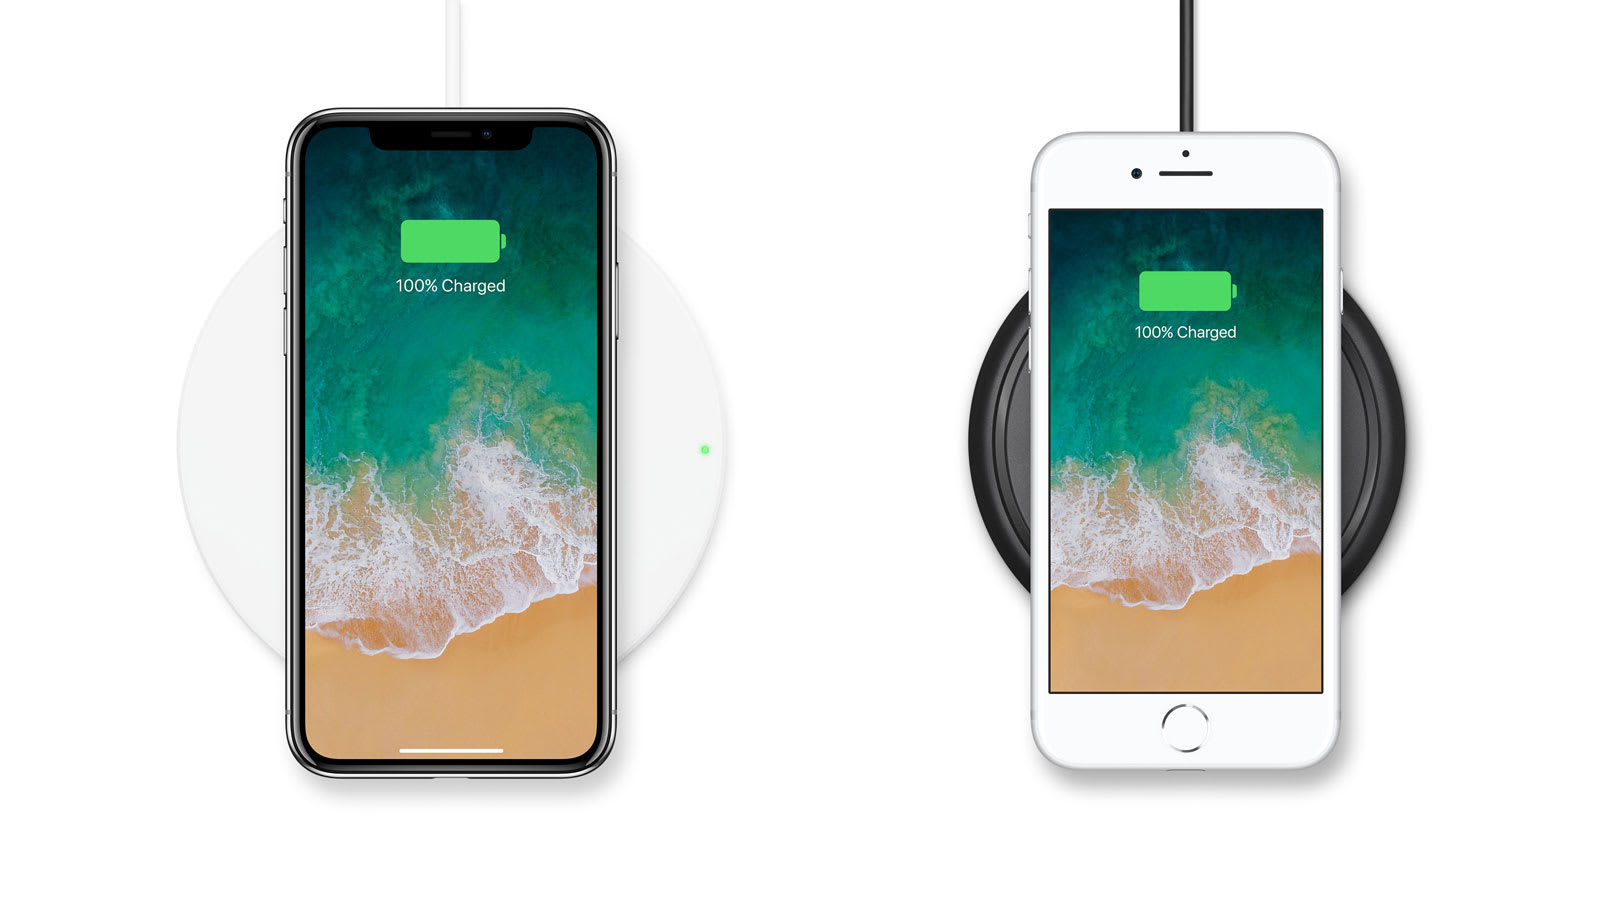 Belkin and Mophie offer wireless charging pads for the new